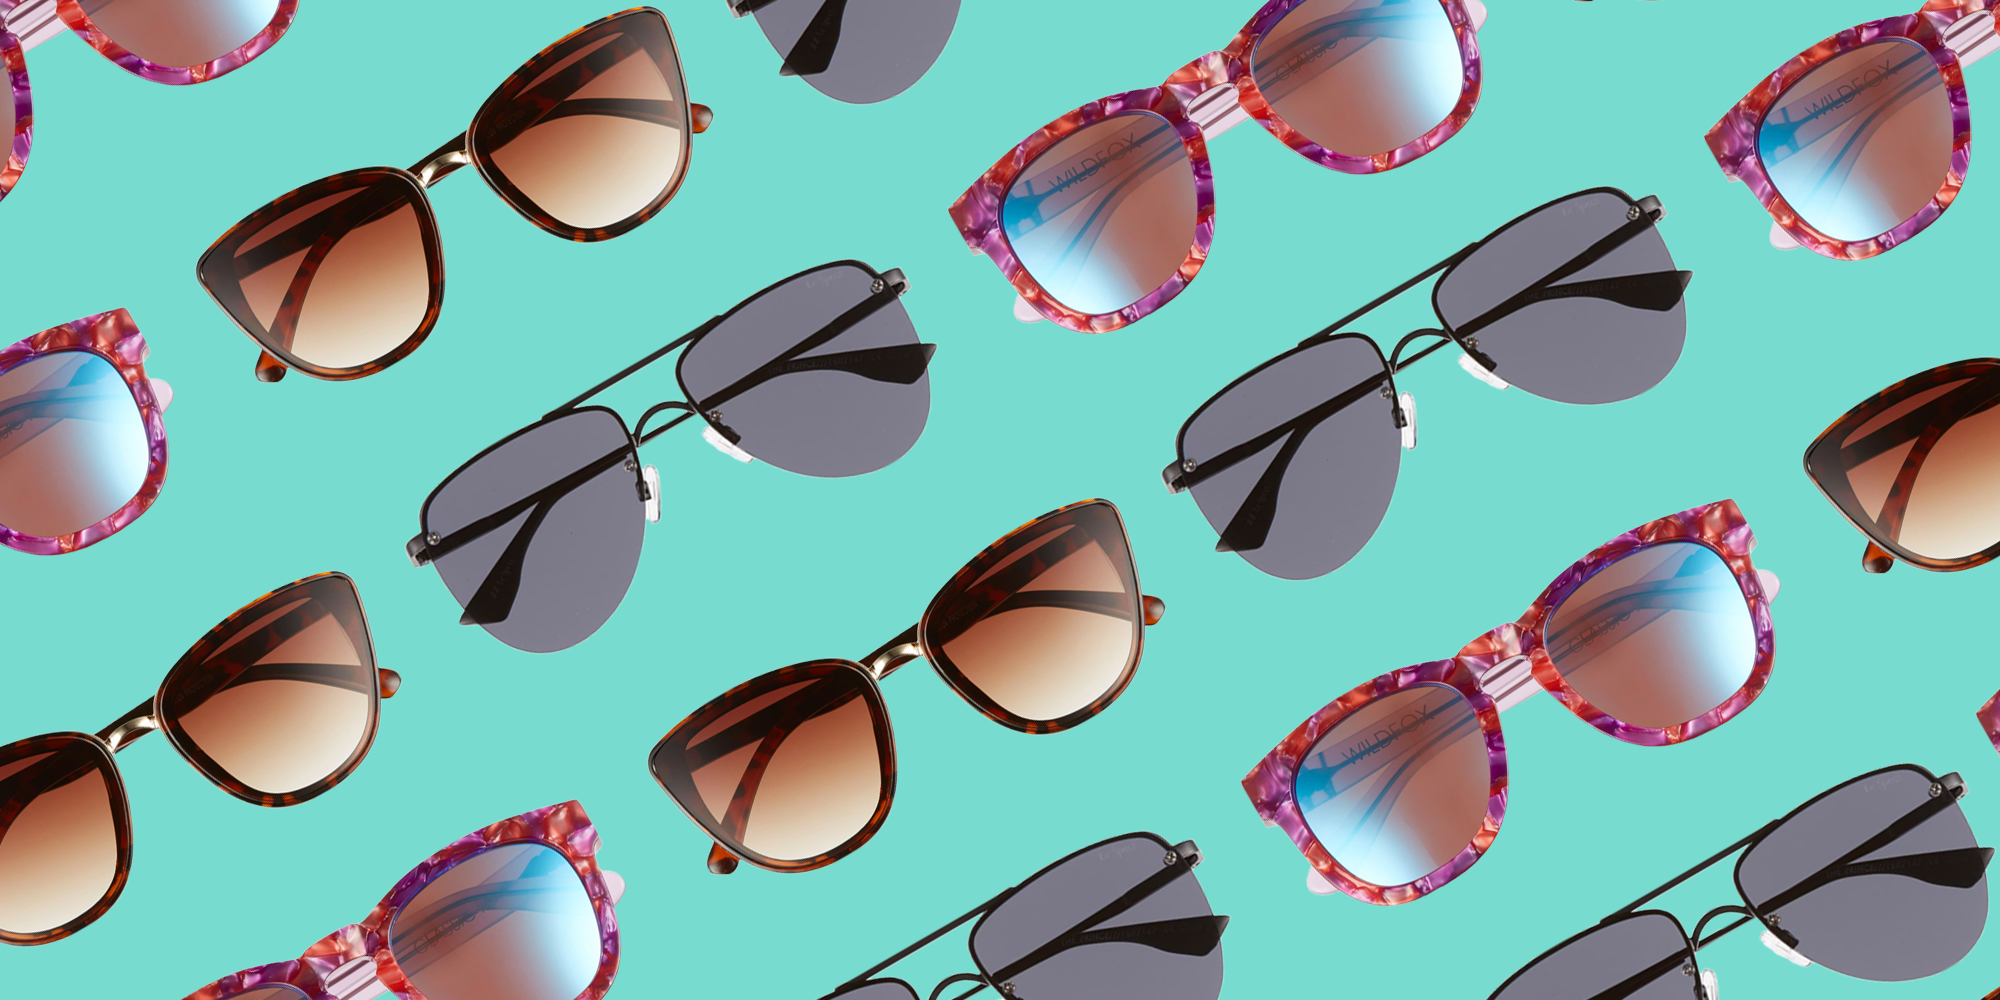 69e744caa1 12 Best Sunglasses for Round Faces